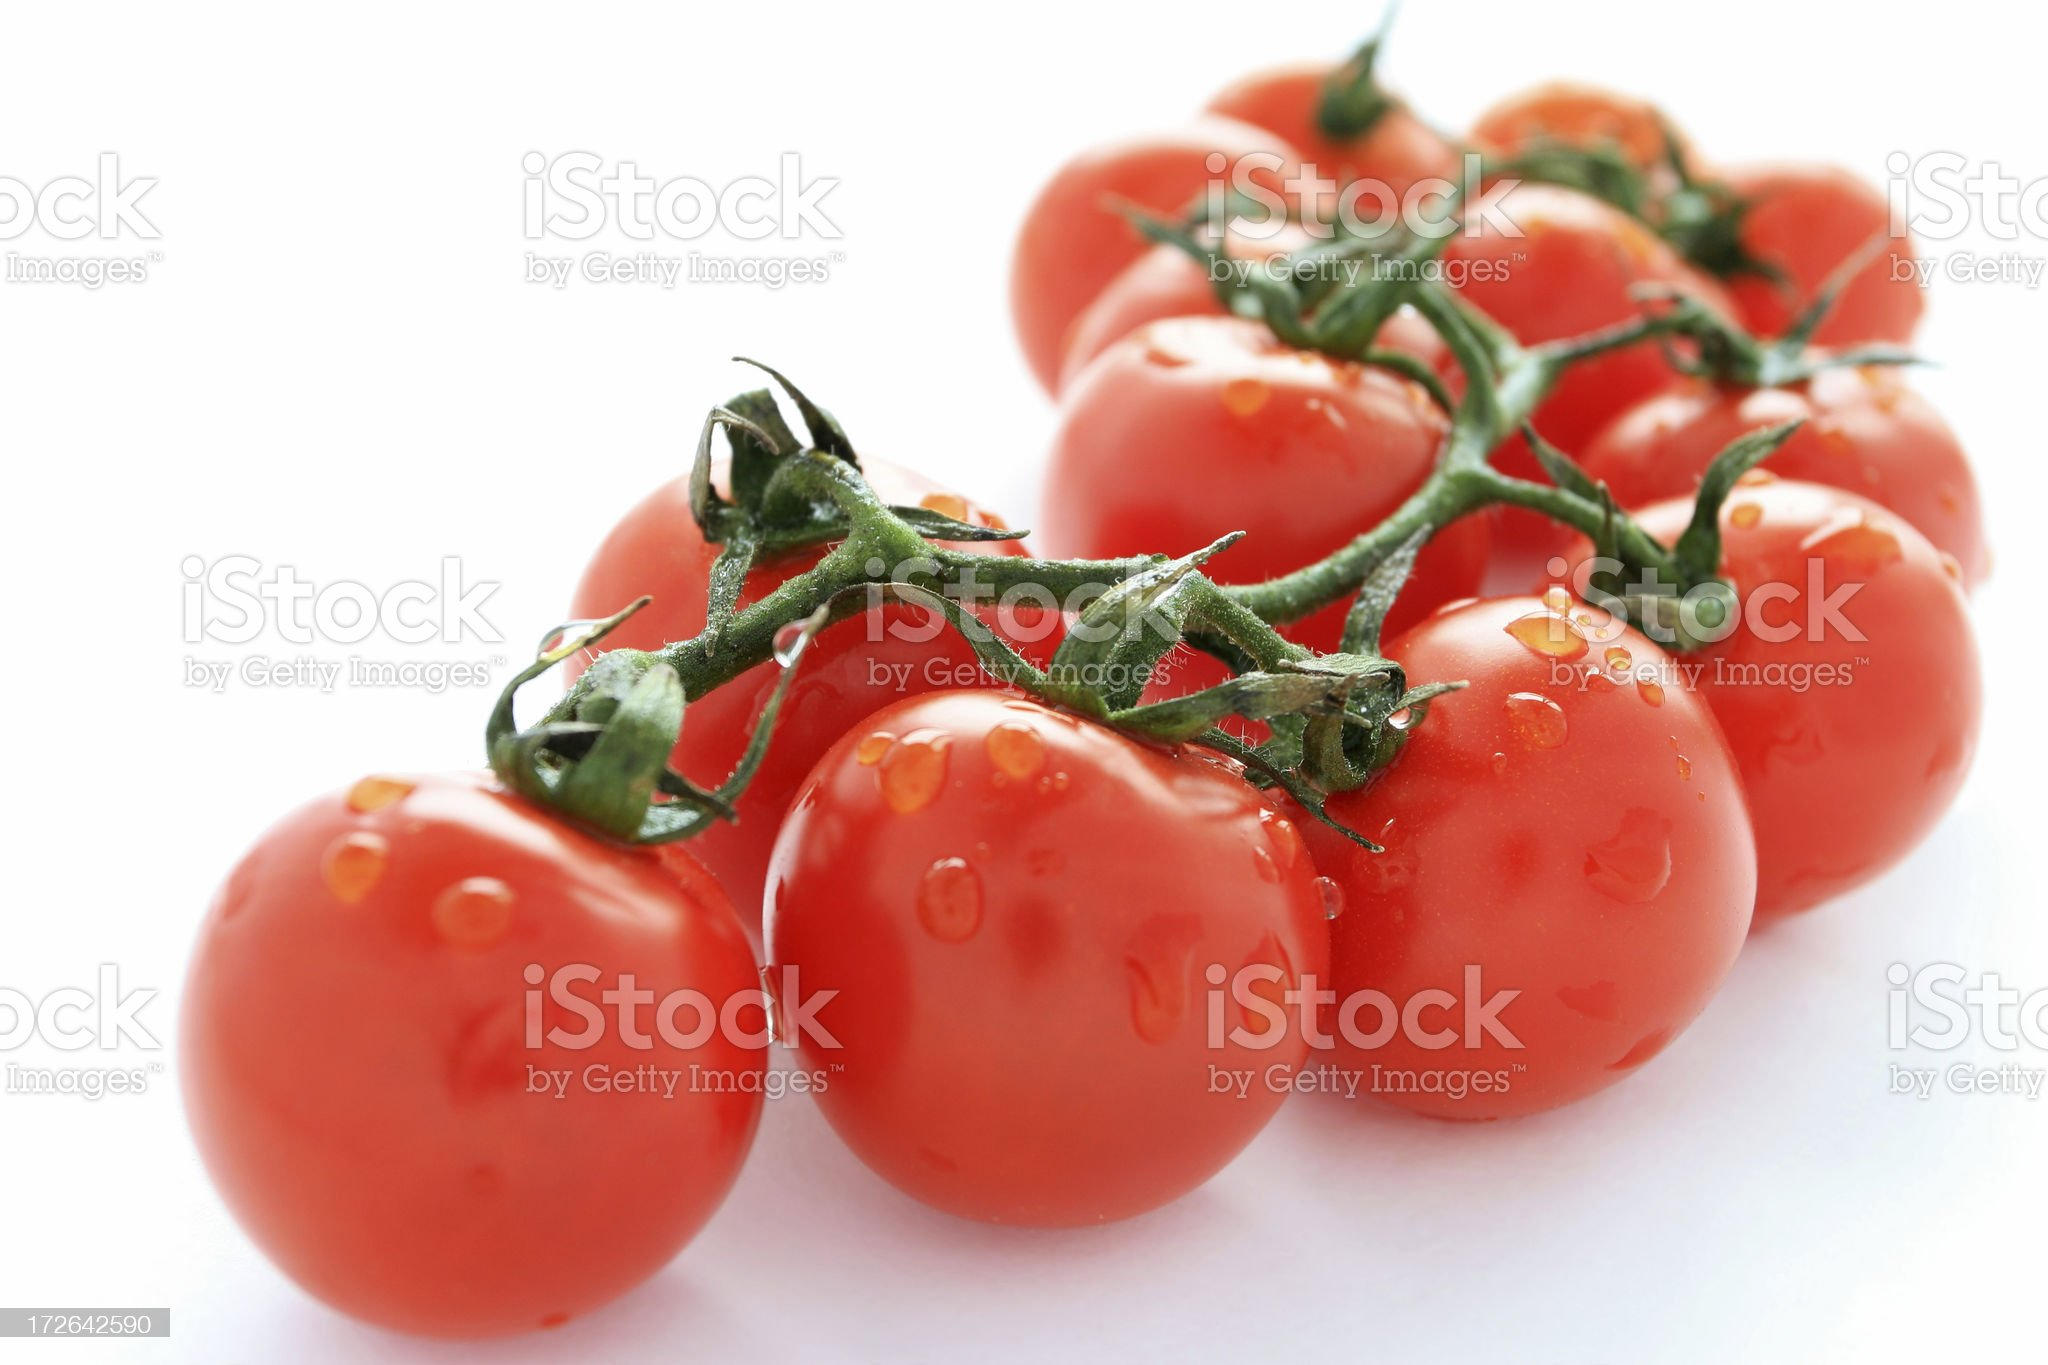 Cherry tomatoes. royalty-free stock photo